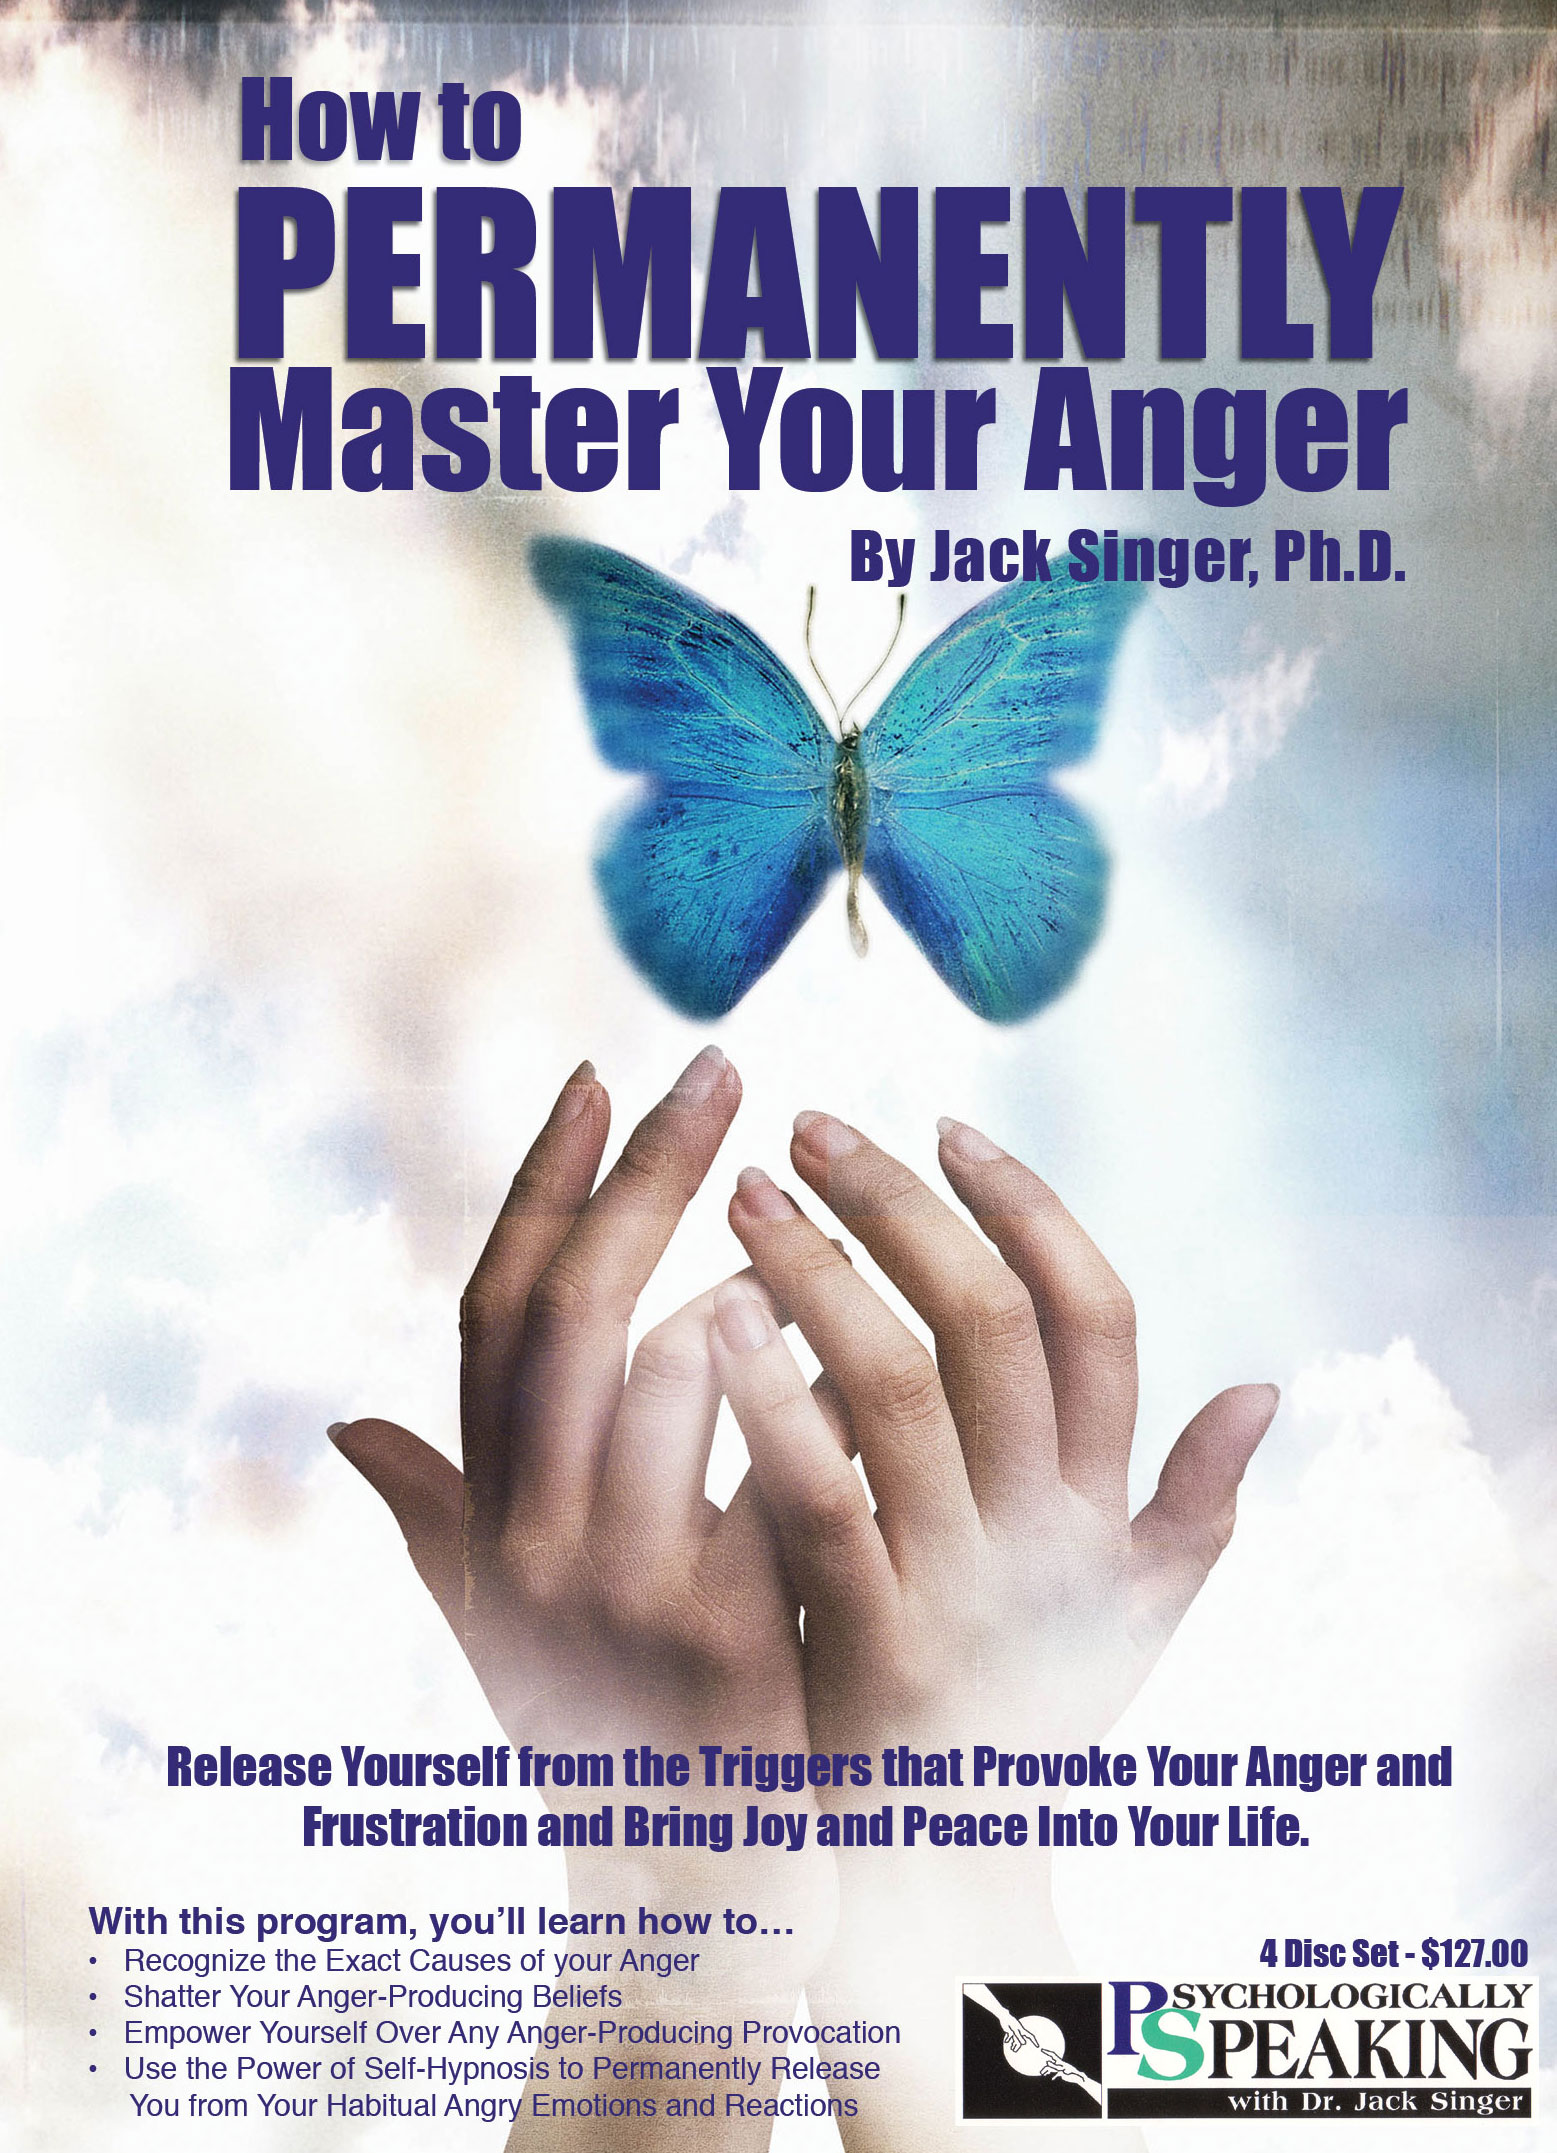 How to Permanently Master Your Anger by Jack Singer, Ph.D